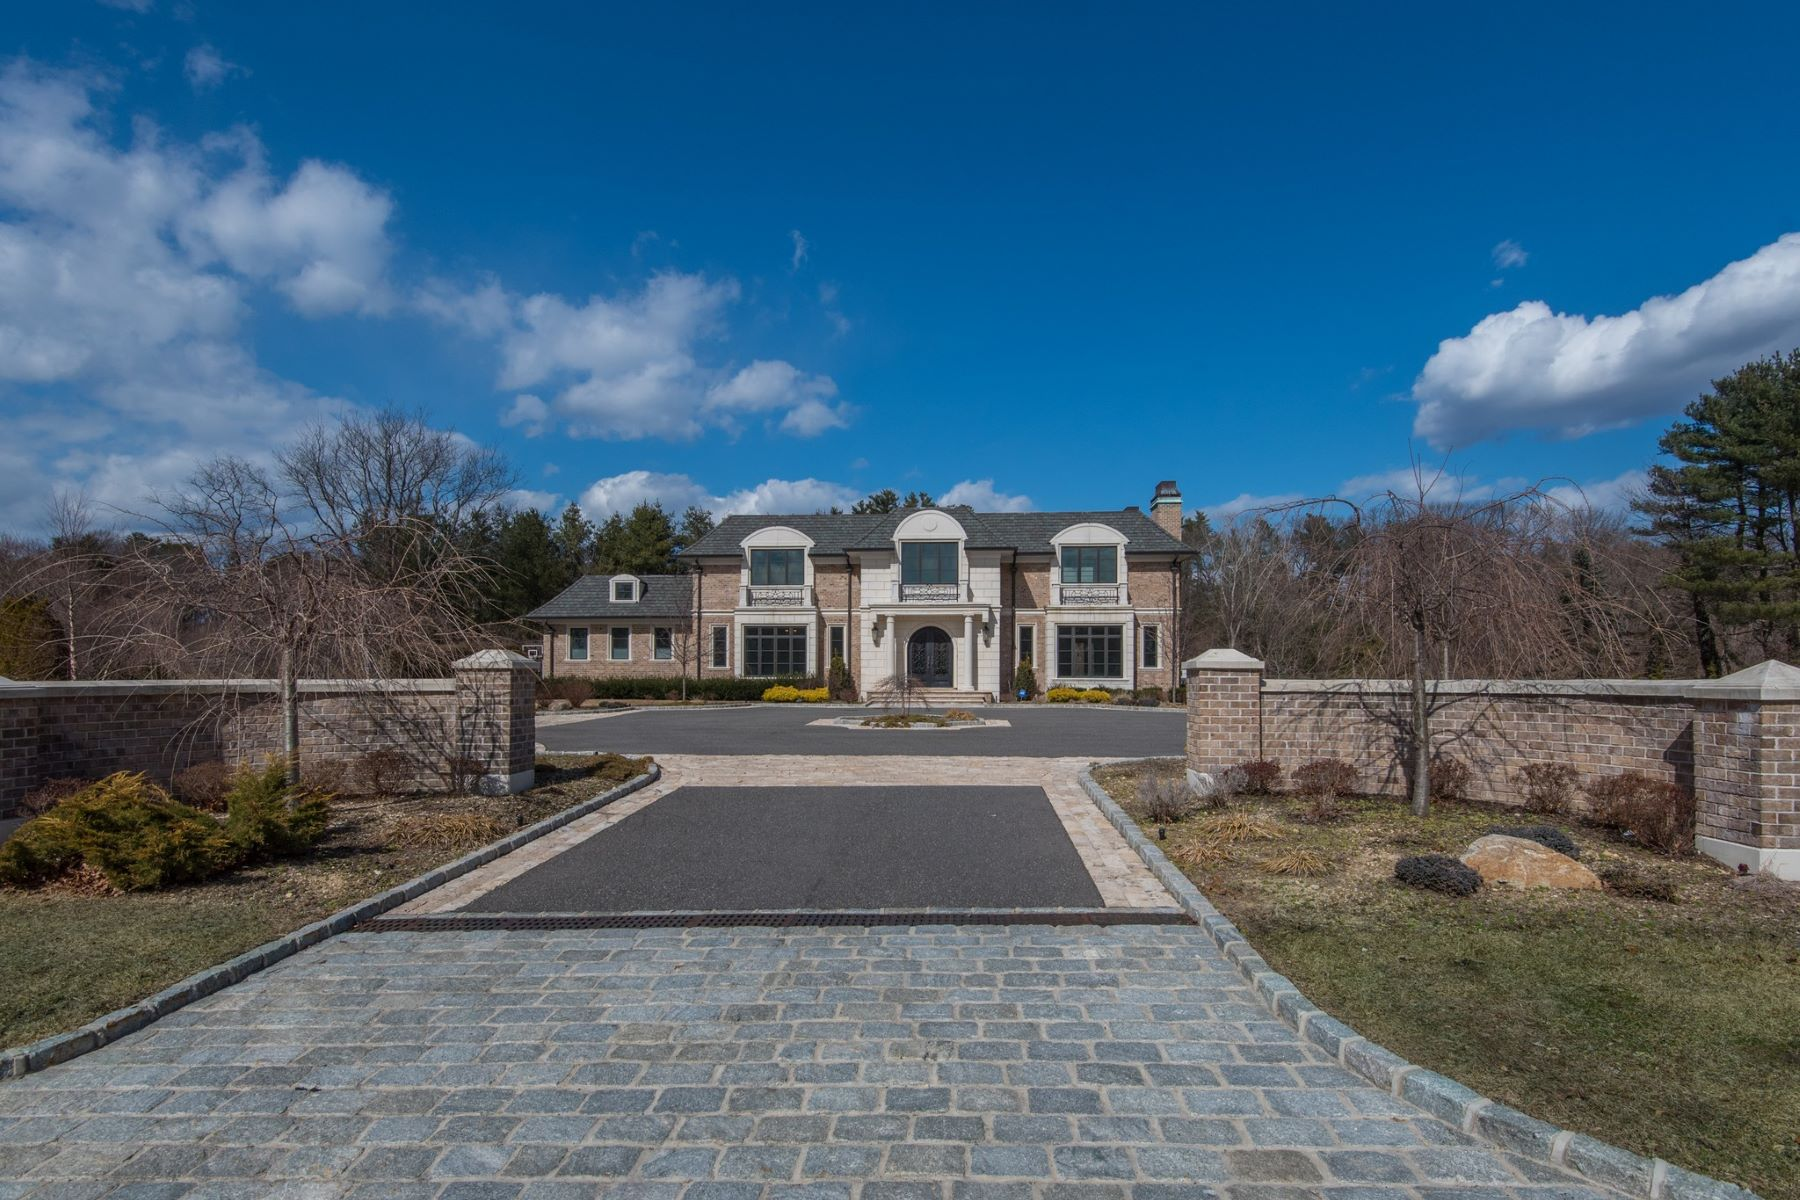 Single Family Homes for Sale at Old Westbury 22 Rolling Hill Road Old Westbury, New York 11568 United States